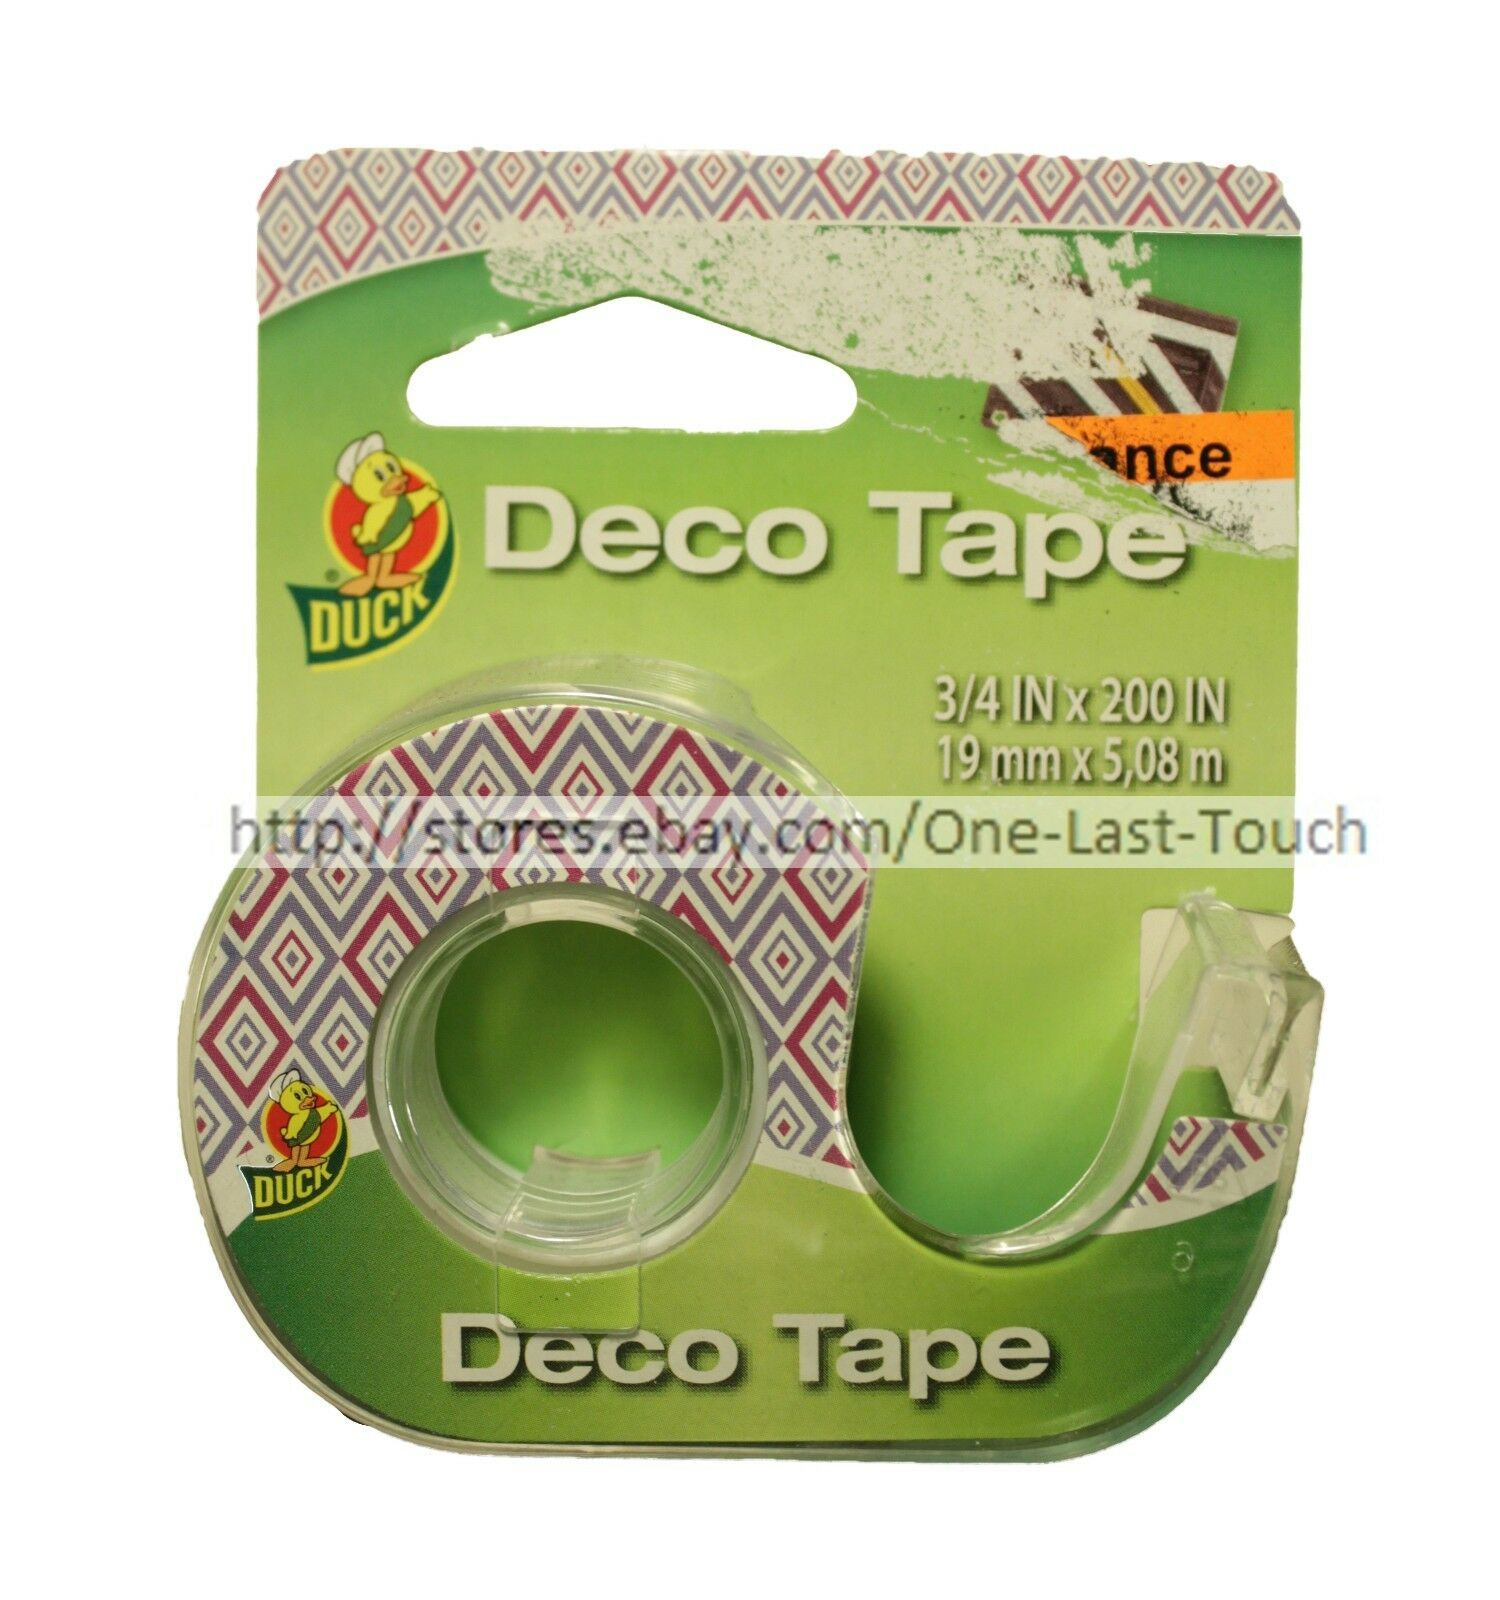 DUCK* Decorative DECO TAPE Handheld Dispenser GLOSSY FINISH New! *YOU CHOOSE* image 2